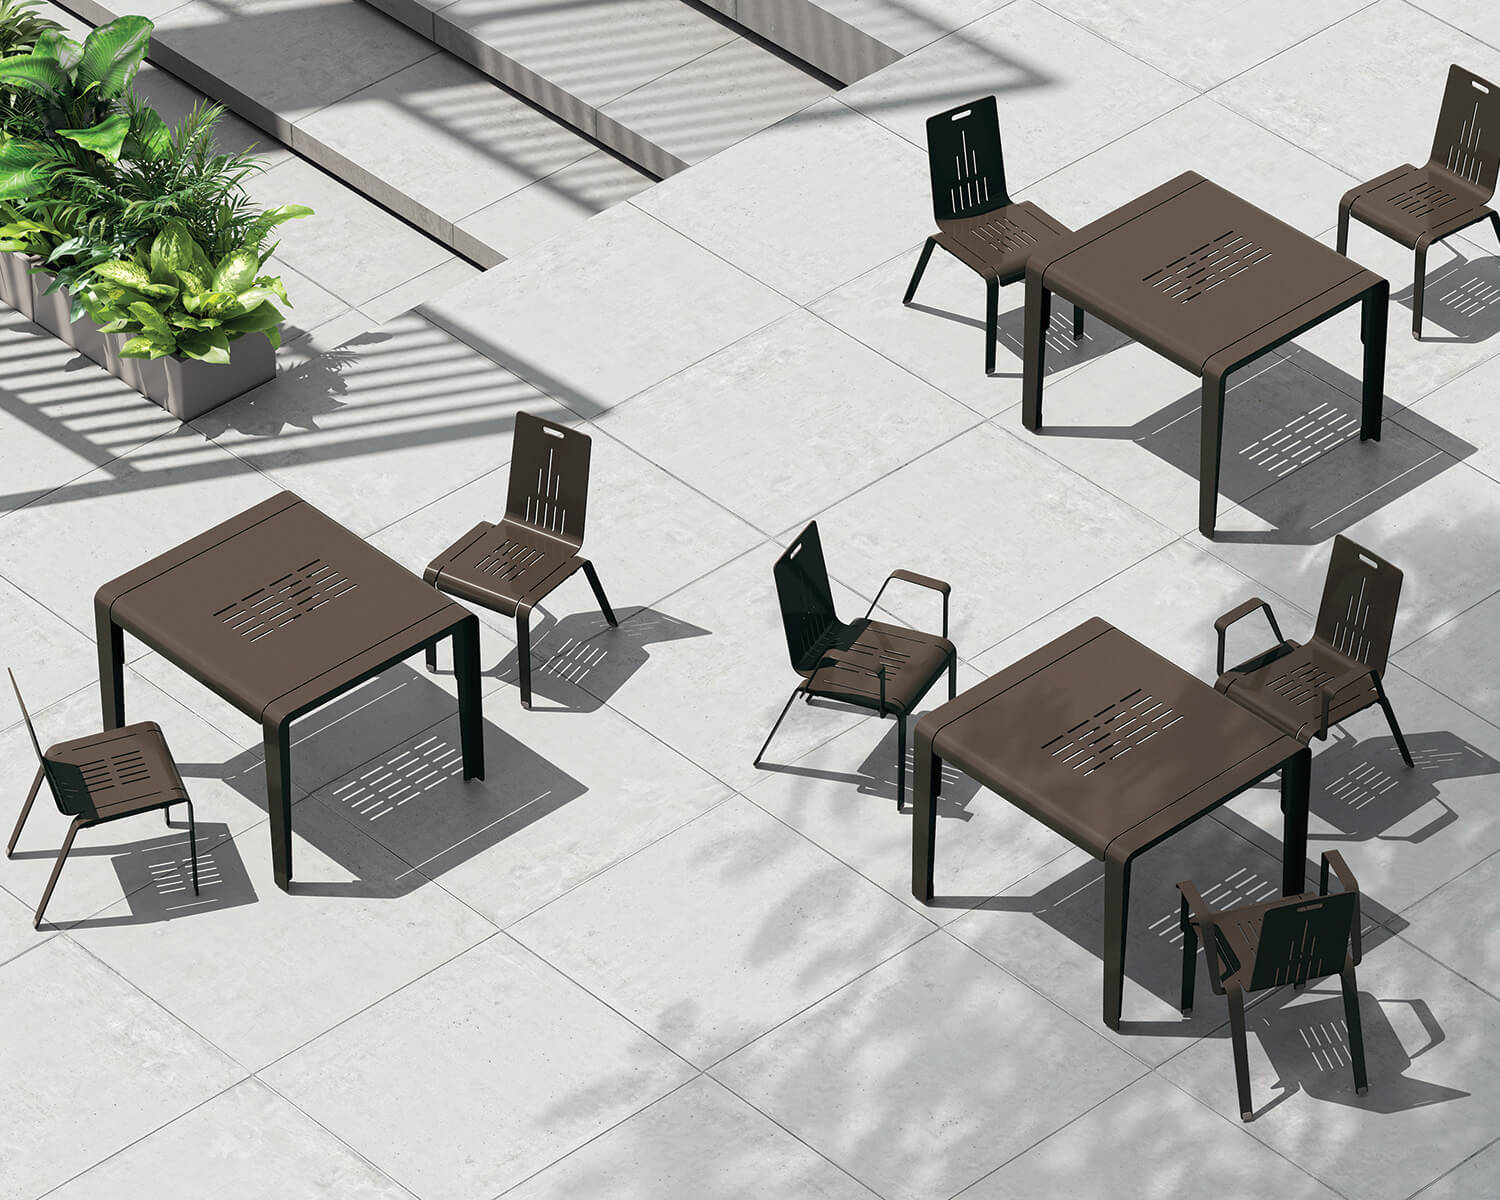 View of brown ALUM tables and chairs from above